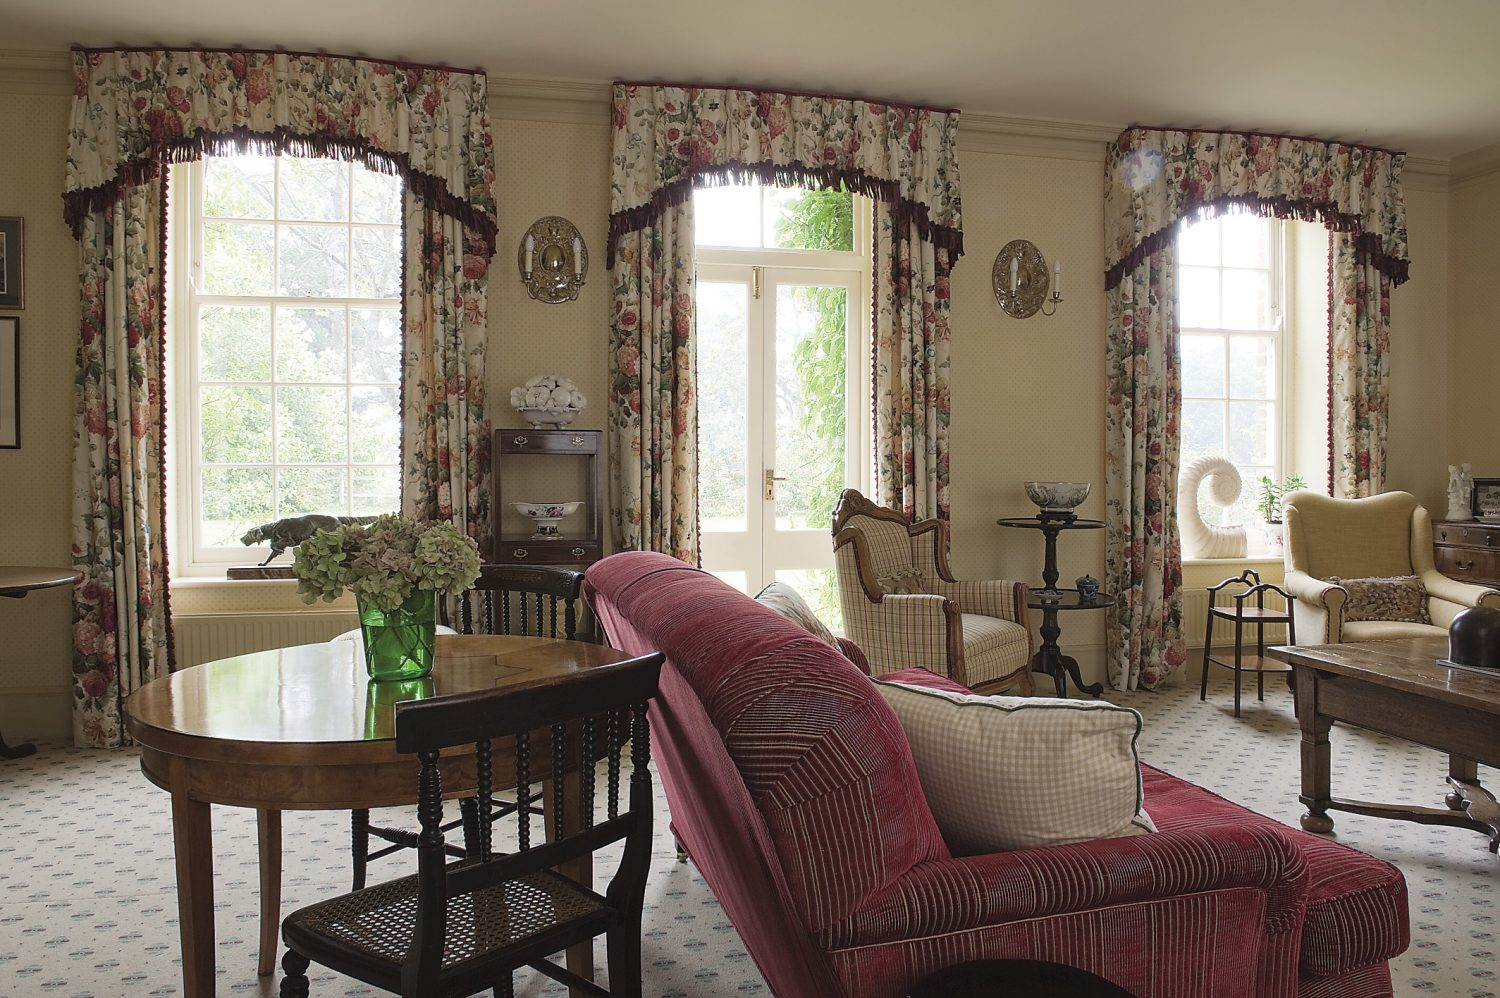 Sophie's use of pattern is bold and assured. The curtain fabric, generously draped in the drawing room, is by Colefax & Fowler